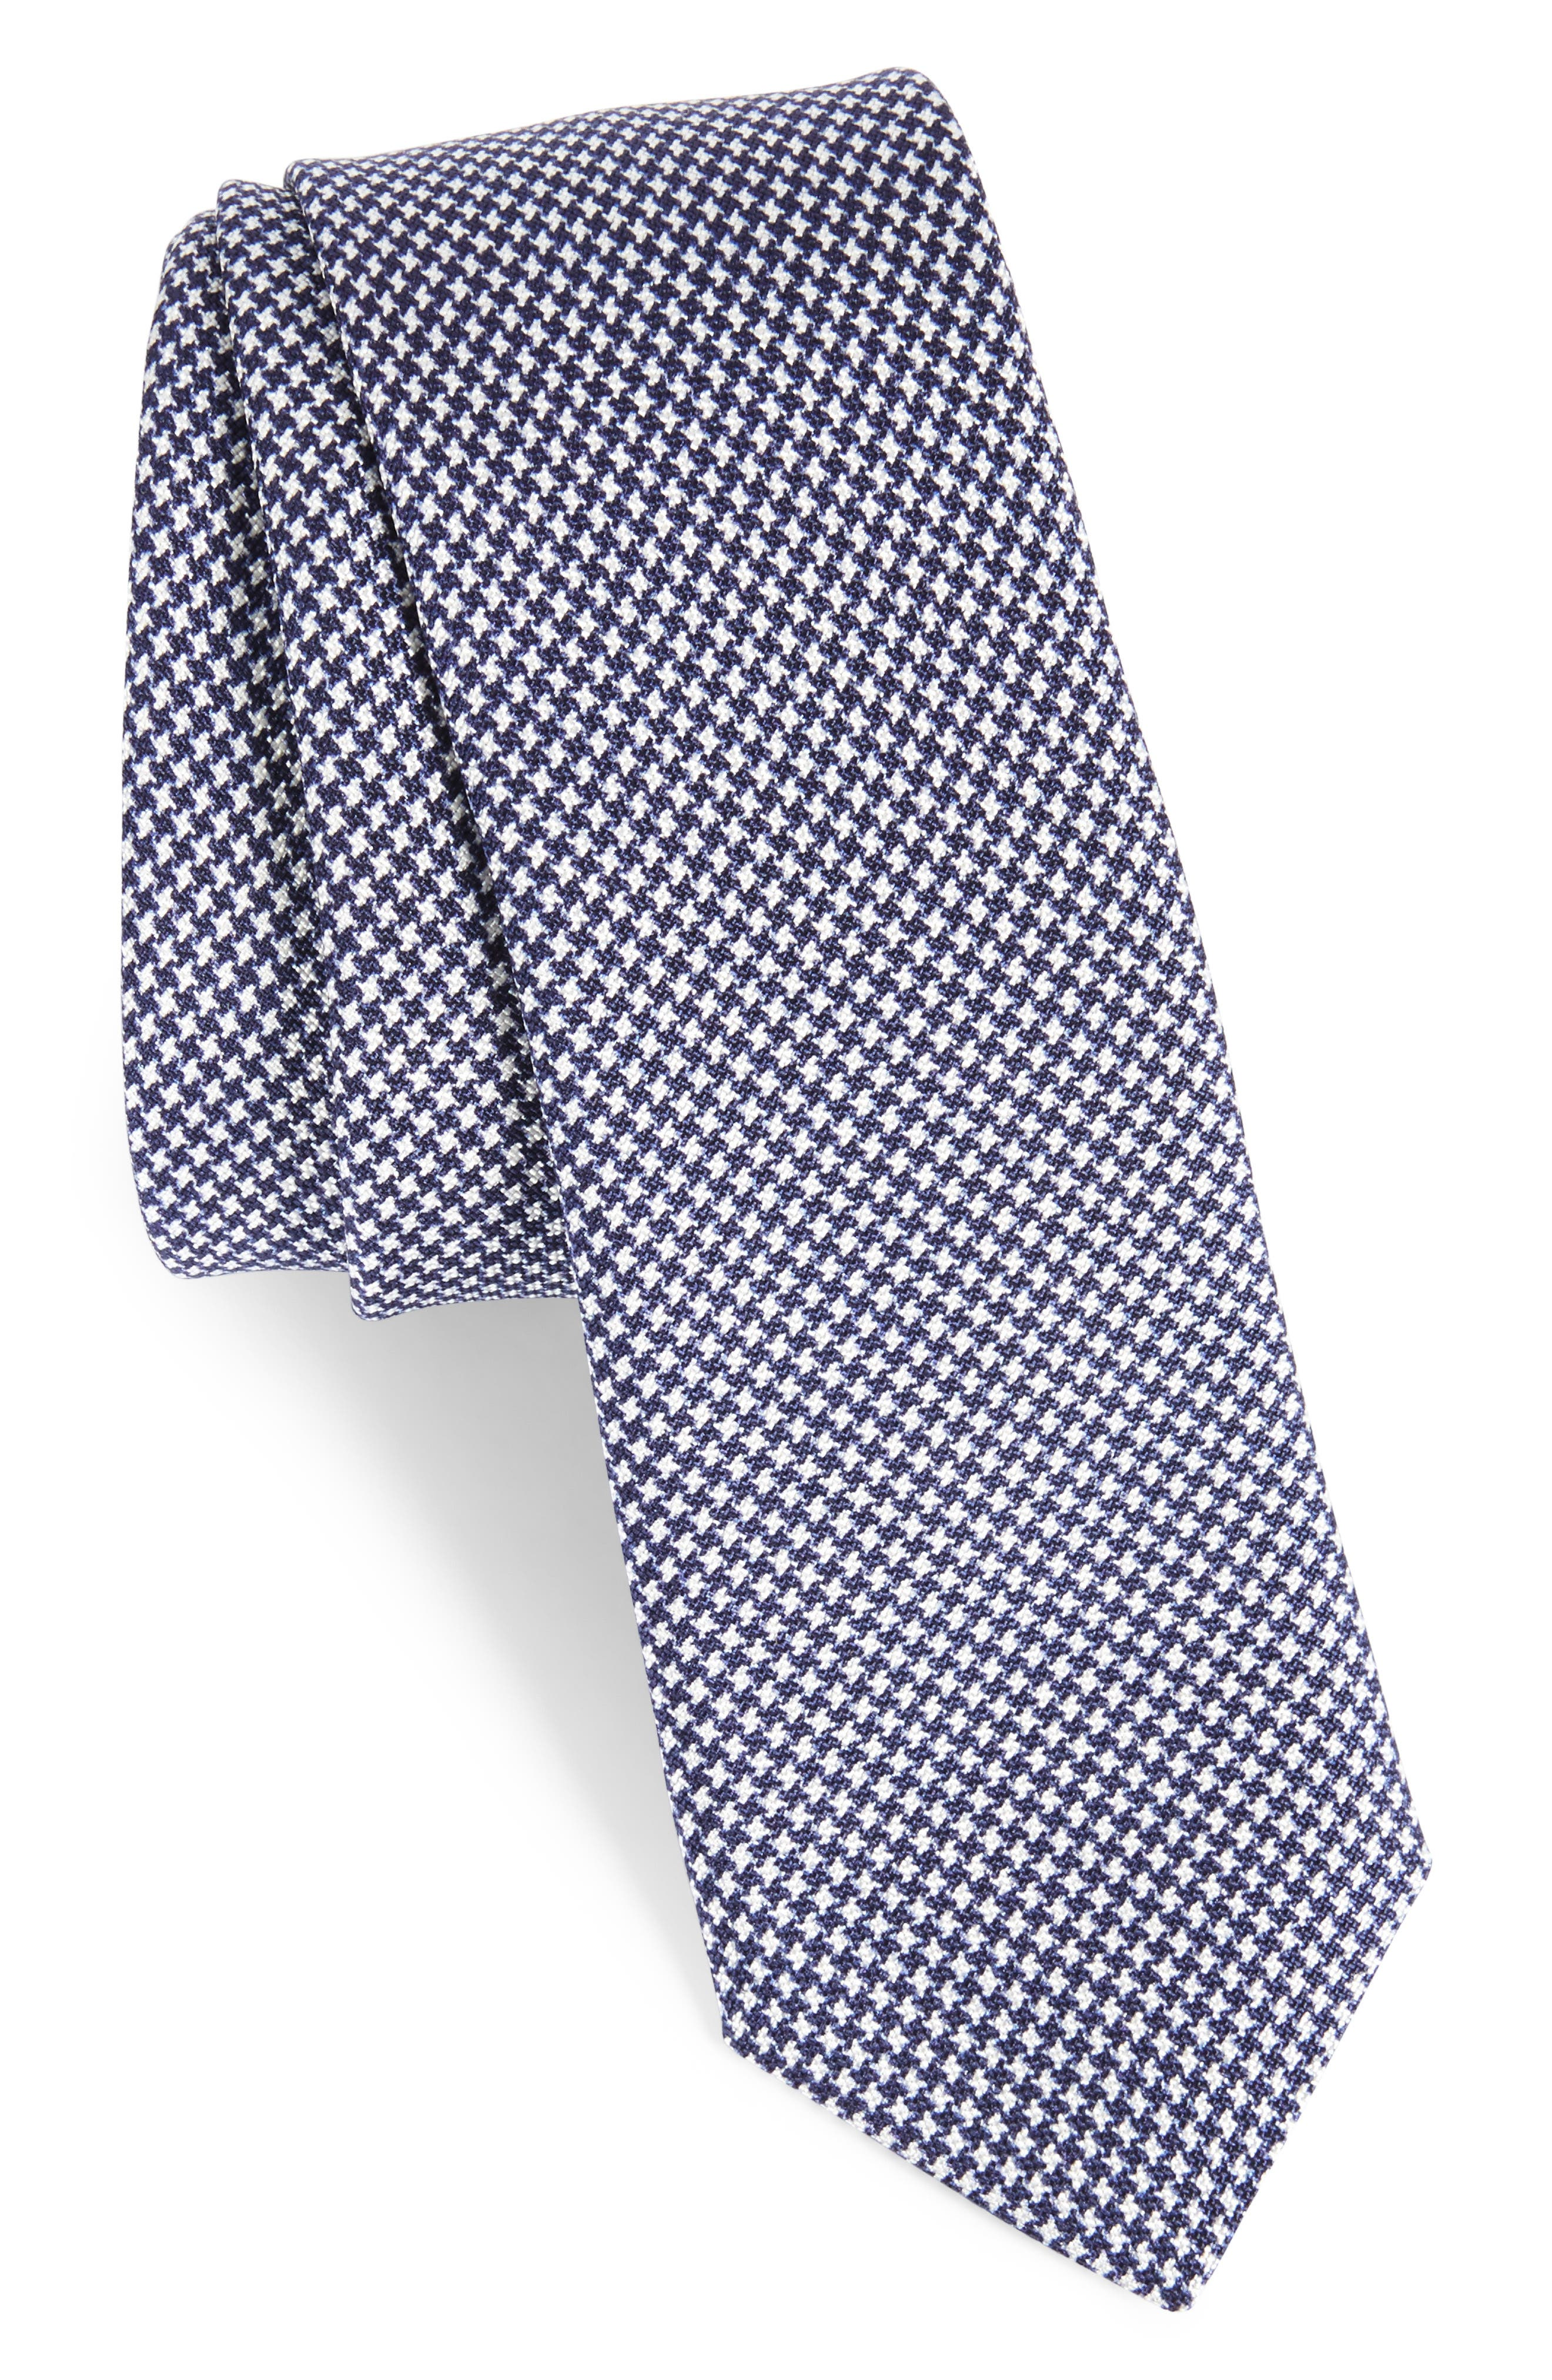 Houndstooth Silk Skinny Tie,                             Main thumbnail 1, color,                             NAVY